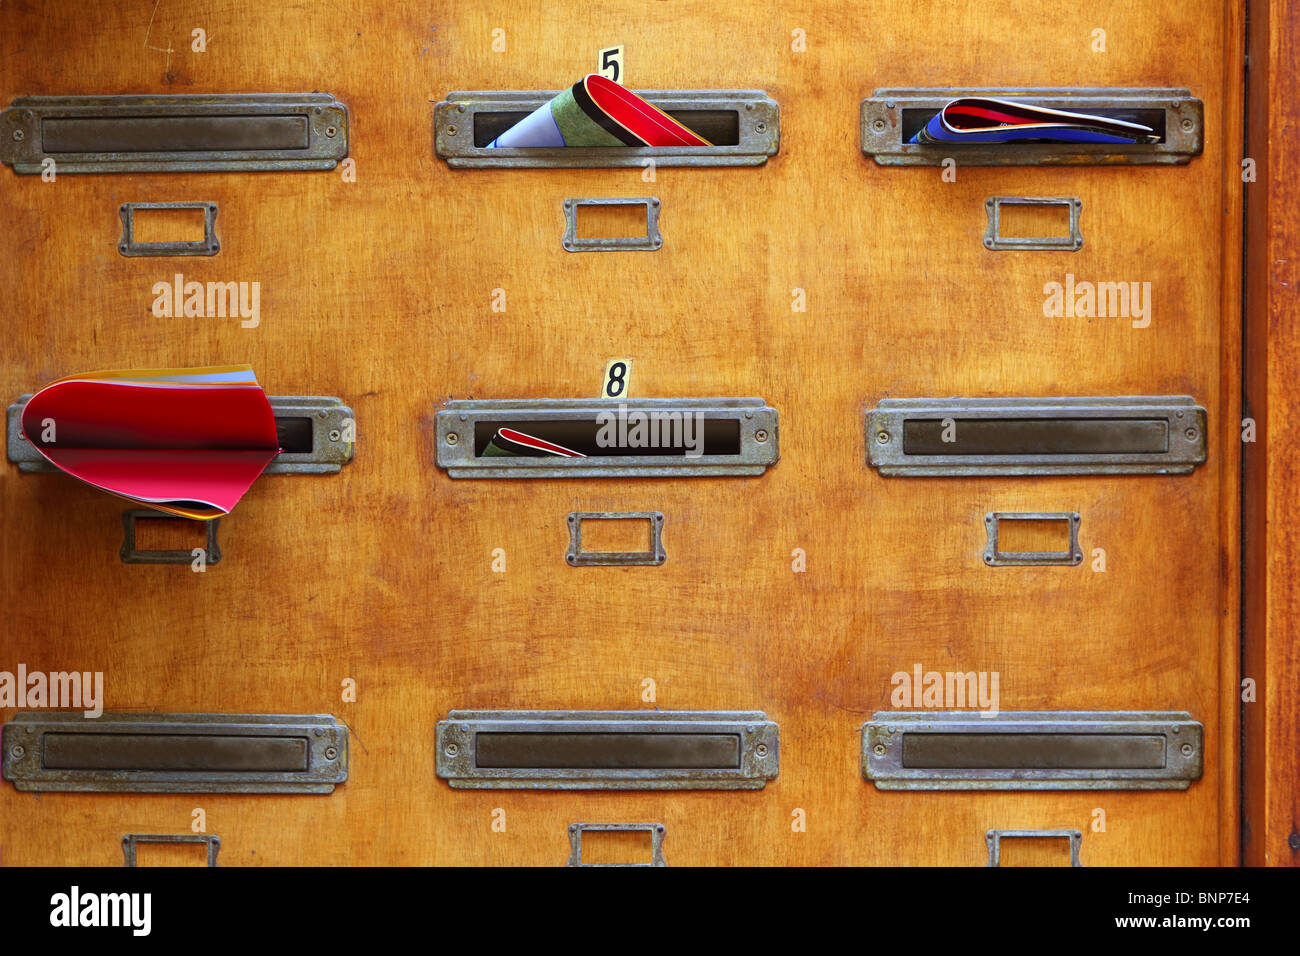 aged mailboxes spain condominium wooden wall rusty brass - Stock Image